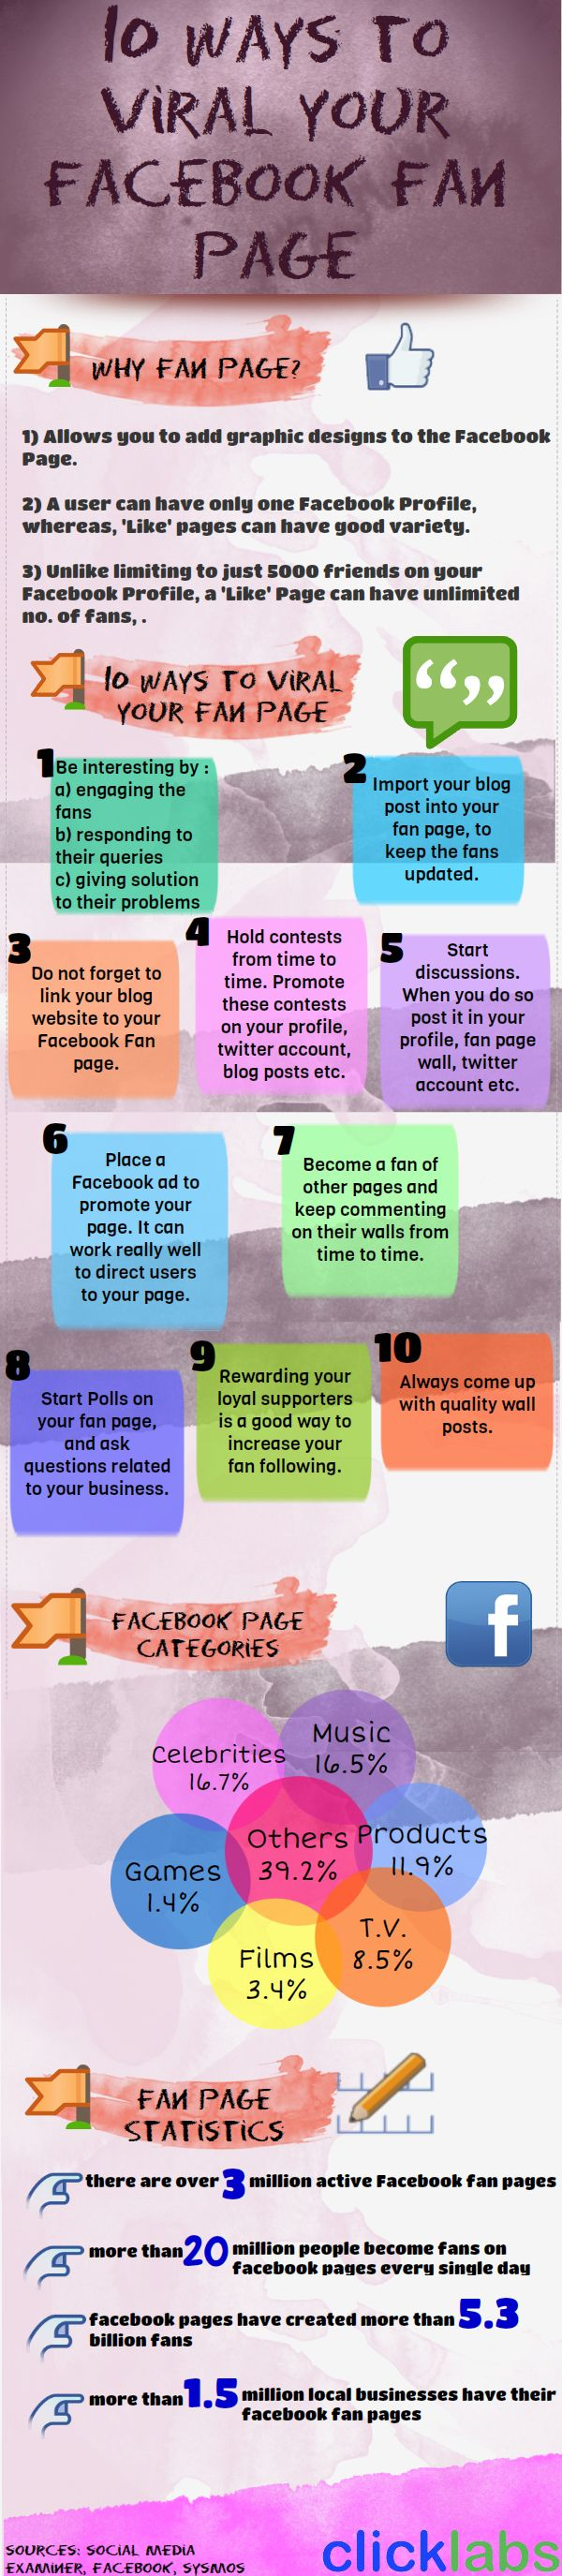 10 Ways To Popularize Your #Facebook page - #infographic  #RePin by AT Social Media Marketing - Pinterest Marketing Specialists ATSocialMedia.co.uk